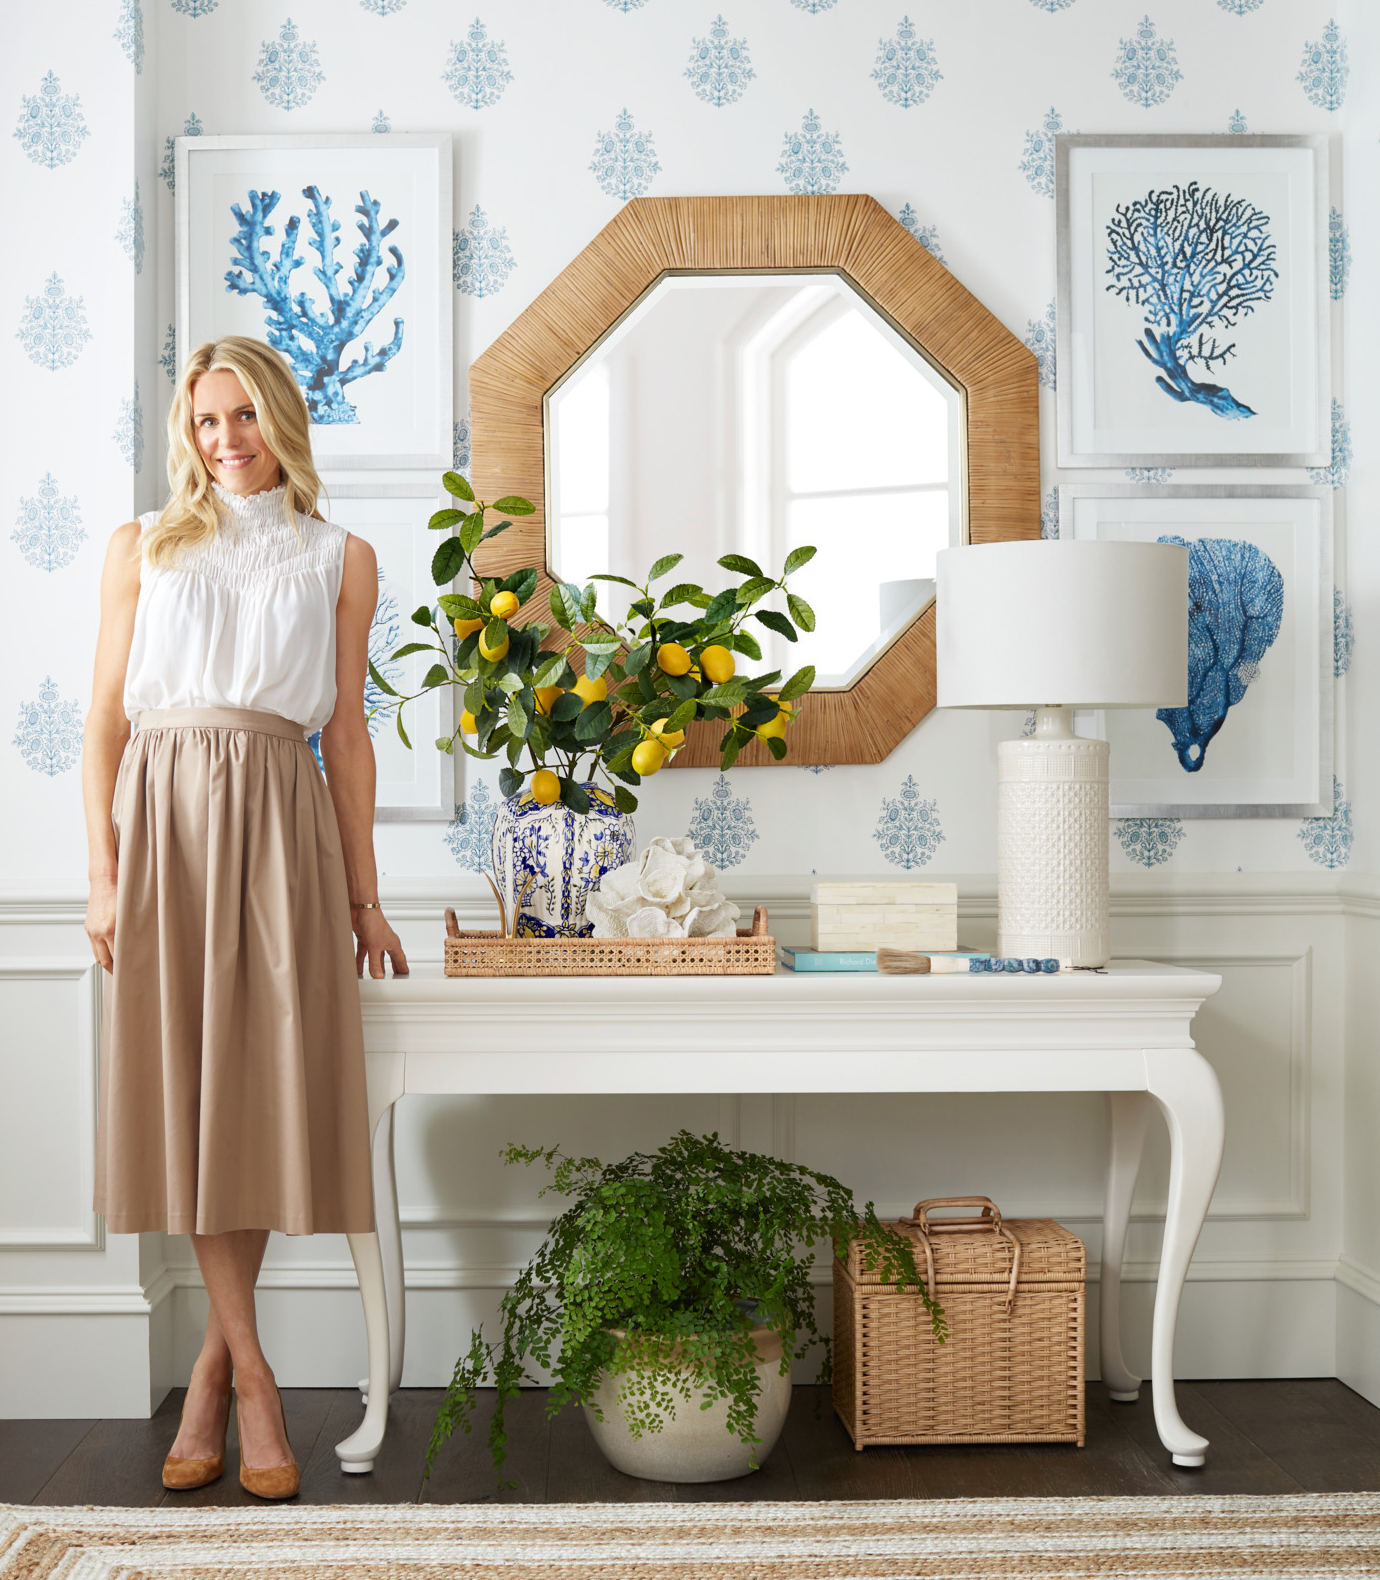 Nashville Designer Sarah Bartholomew On Collaborating With Pottery Barn Finding Beauty In Functionality